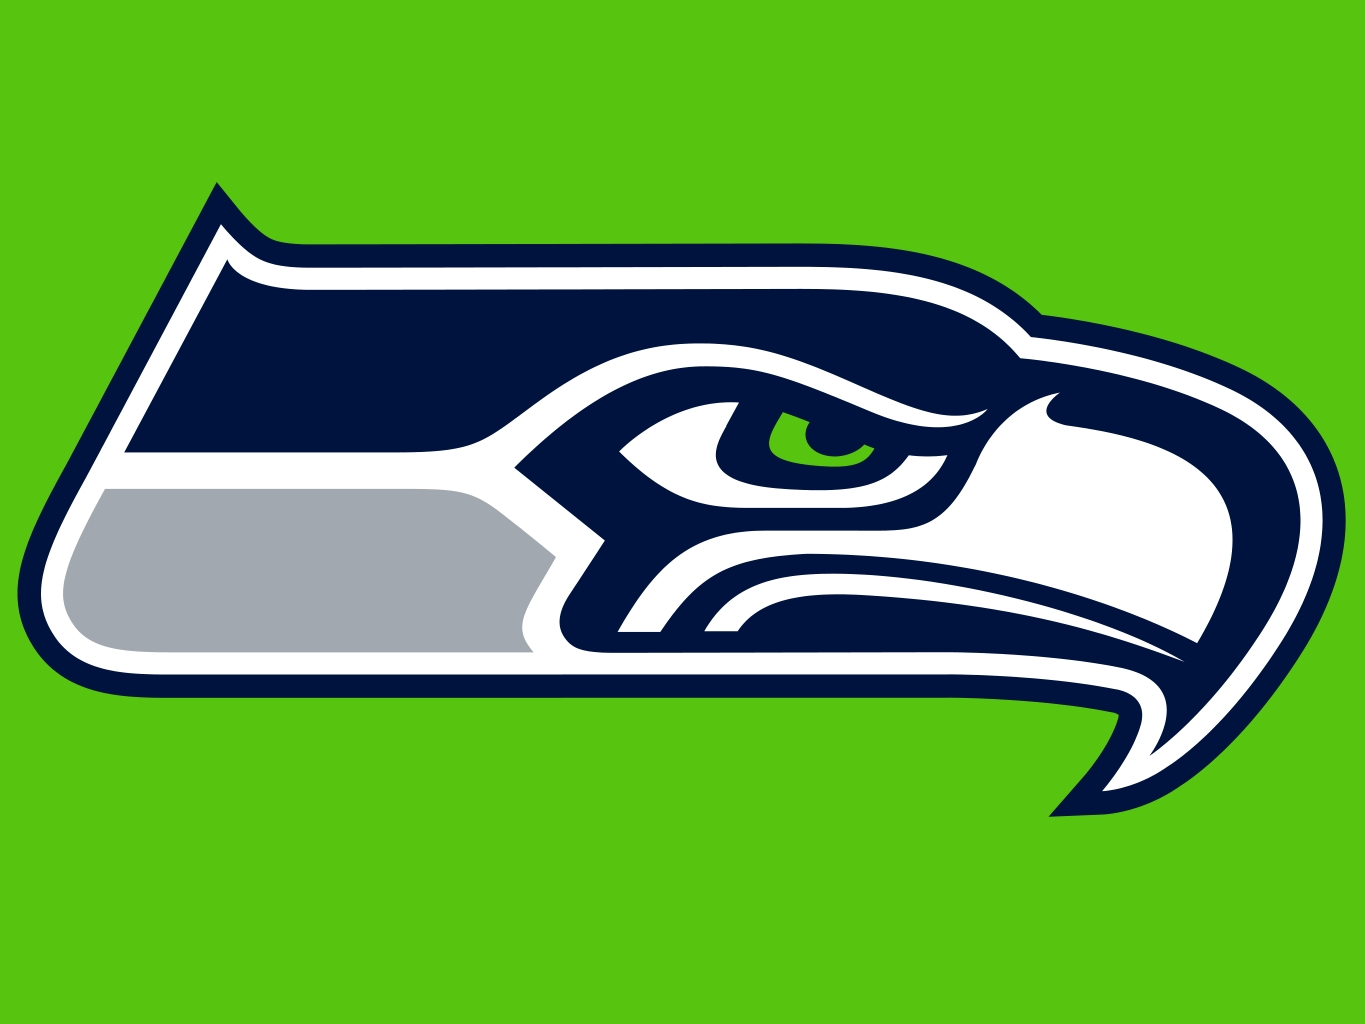 Seattle Seahawks Green Clipart #1-Seattle Seahawks Green Clipart #1-9